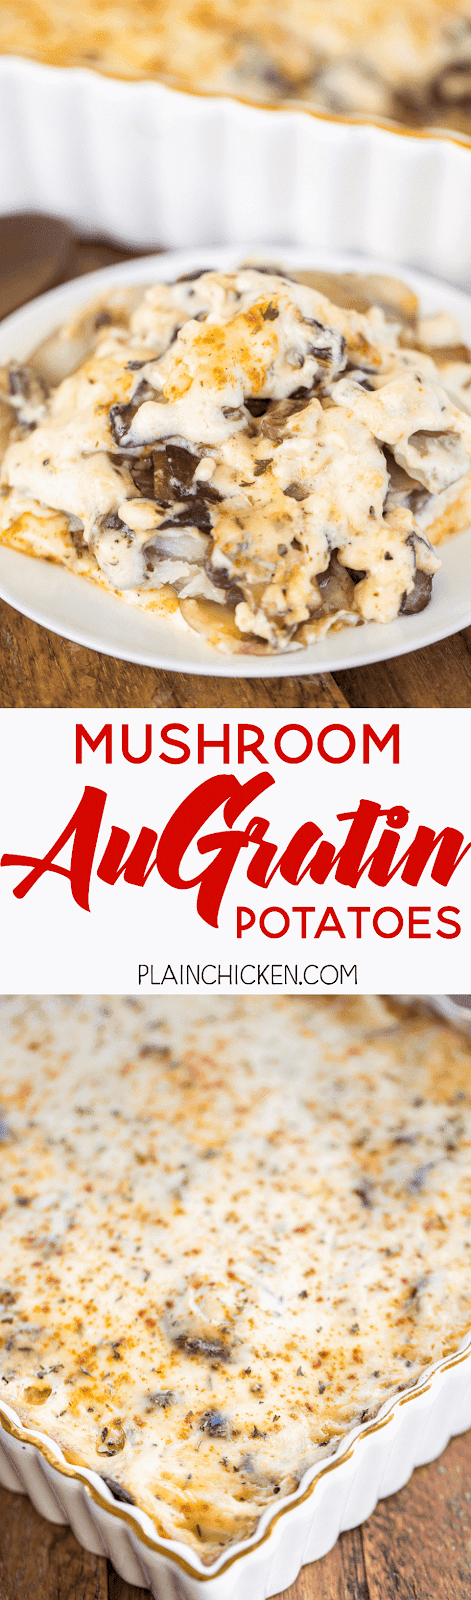 Mushroom Au Gratin Potatoes - AMAZING side dish!!! Mushrooms, potatoes and a homemade Gruyere cheese sauce. Comes together in minutes! Great for a dinner party or potluck. A real crowd pleaser!!